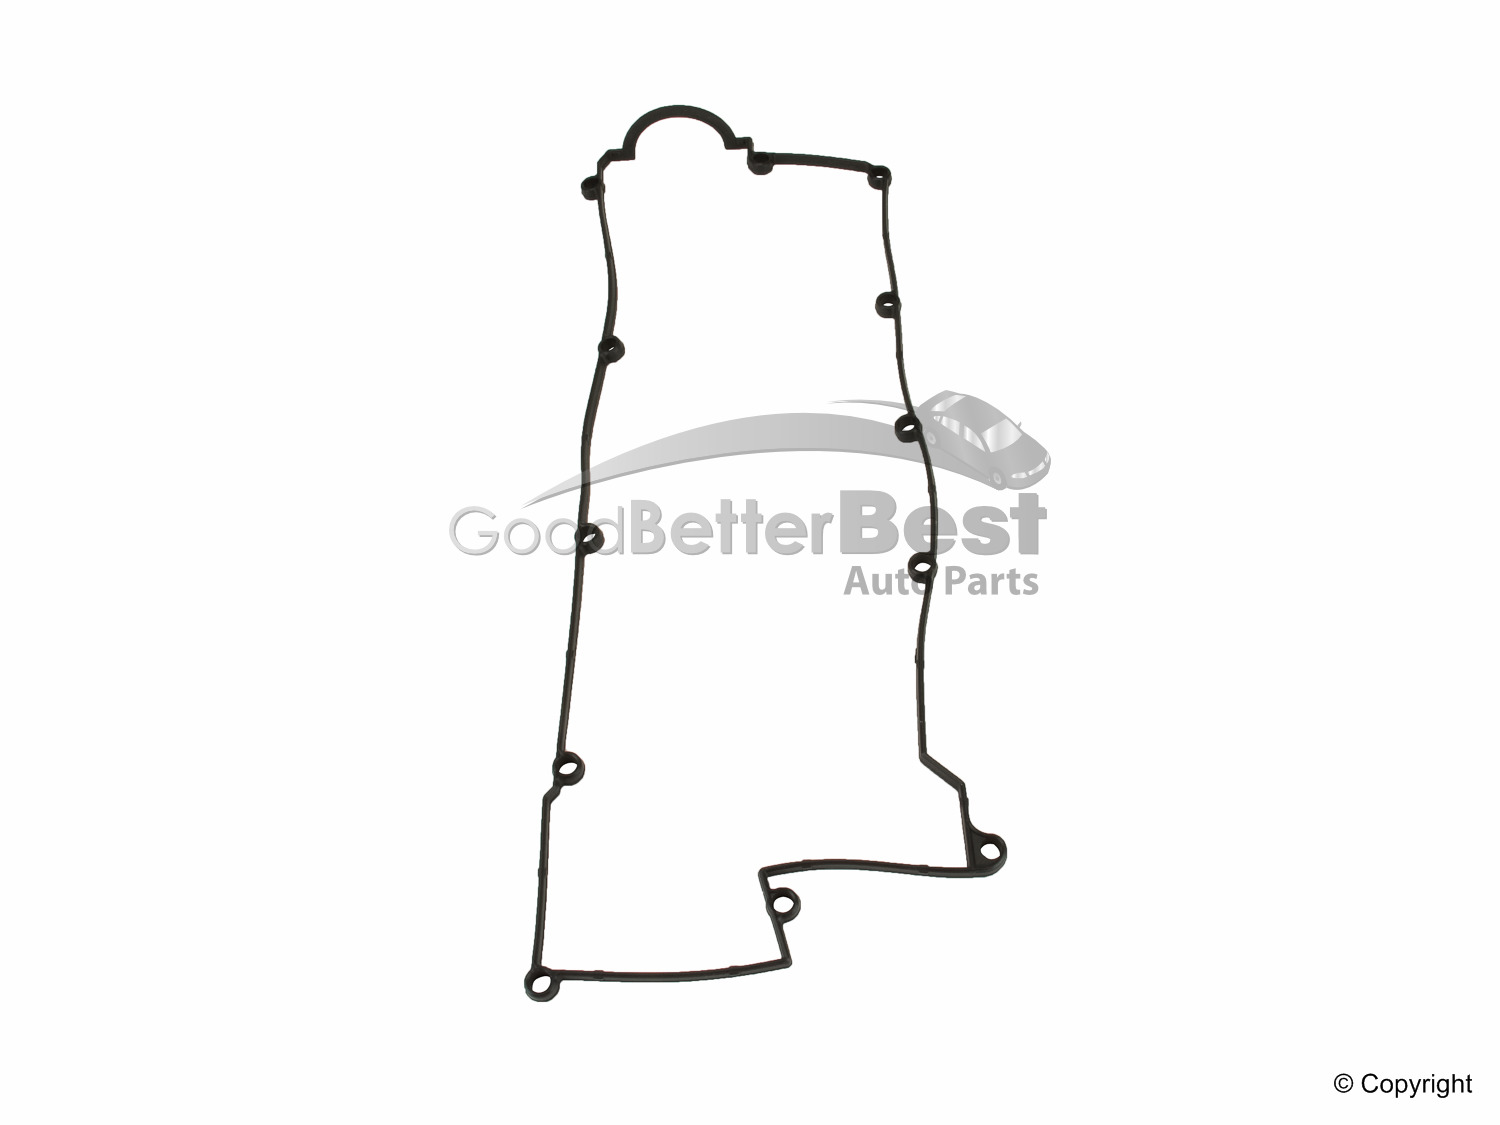 New Parts Mall Engine Valve Cover Gasket P1ga016